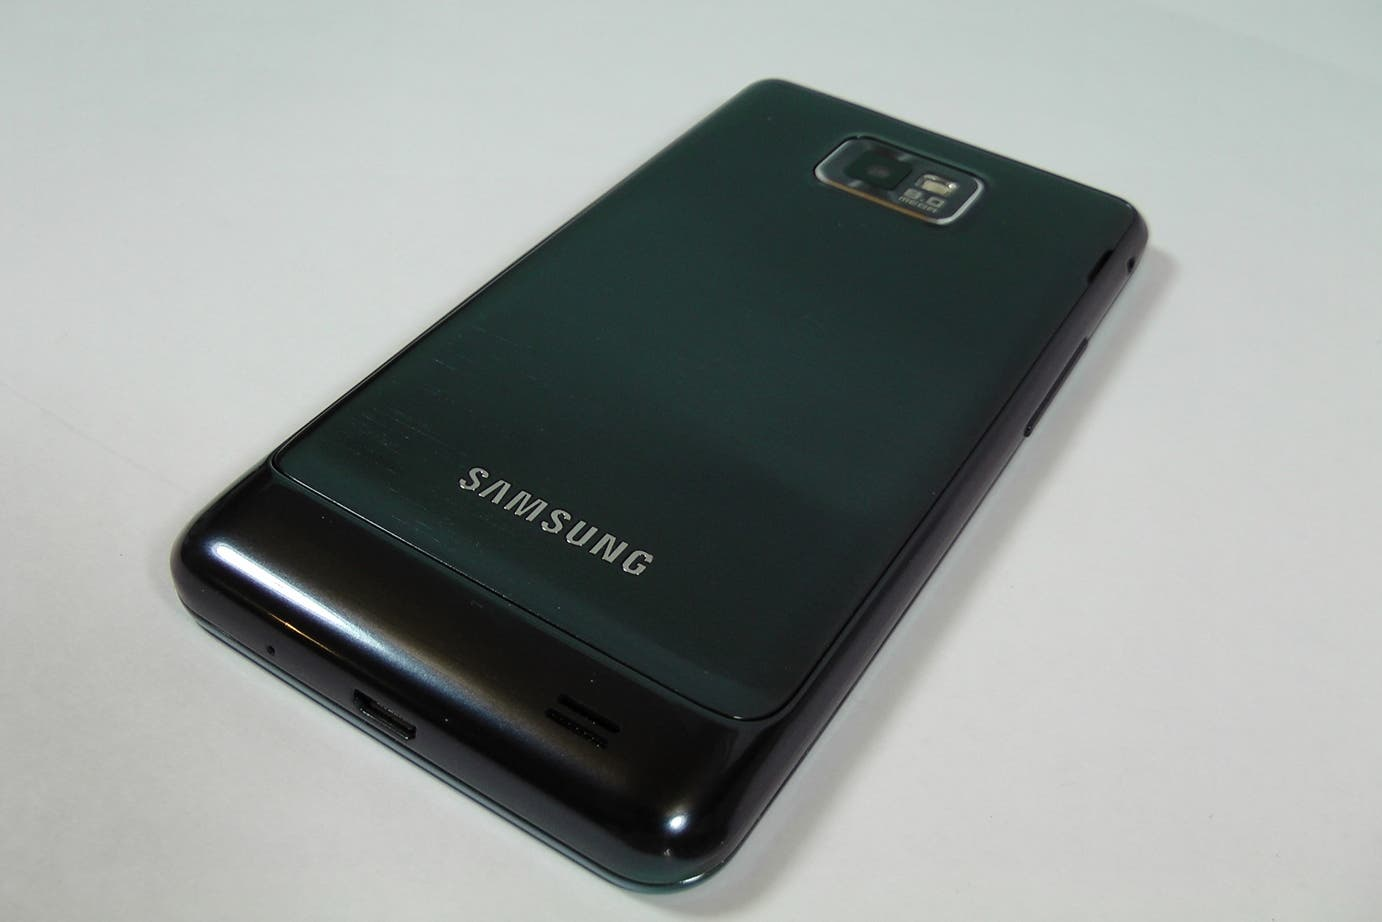 Samsung Galaxy S2 Plus Unboxing 12